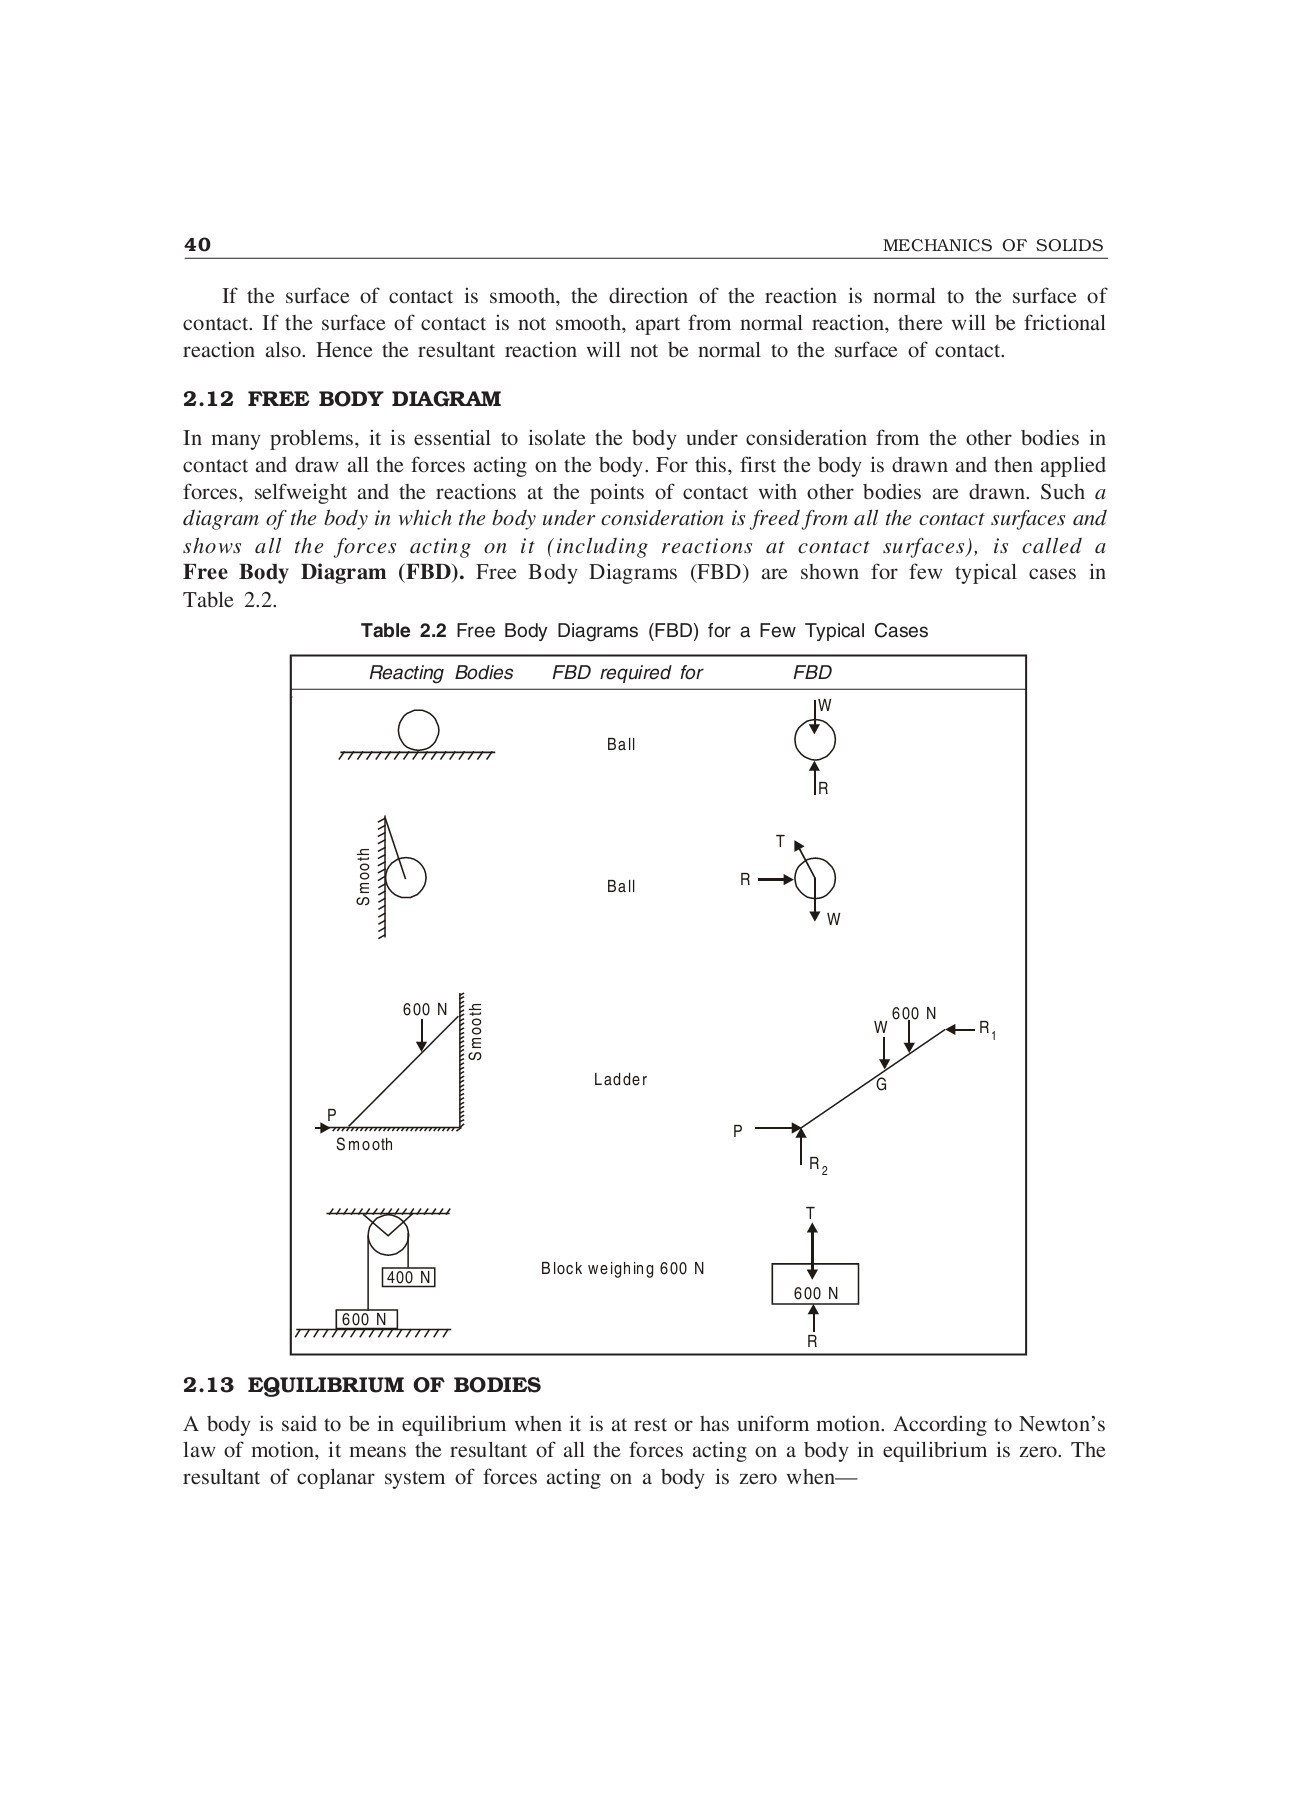 Free Body Diagram In Engineering Mechanics Mechanics Of solids S S Bhavikatti Pages 51 100 Text Version Of Free Body Diagram In Engineering Mechanics